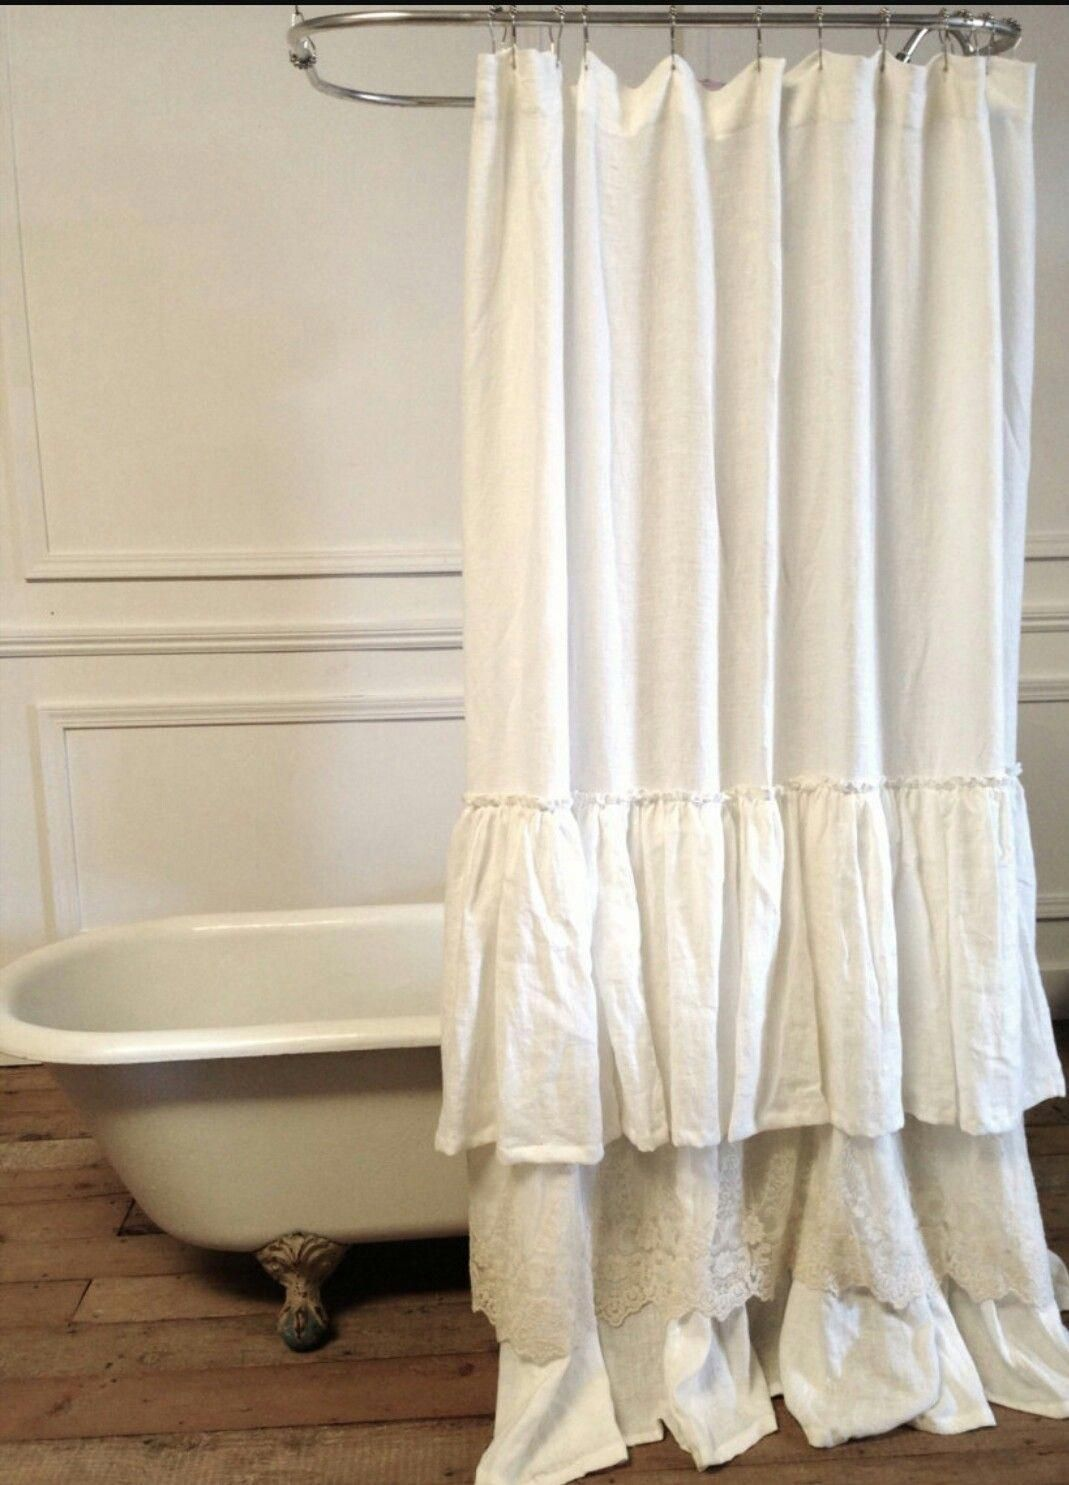 Shabbychicbathrooms Lace Shower Curtains Ruffle For Sale Curtain